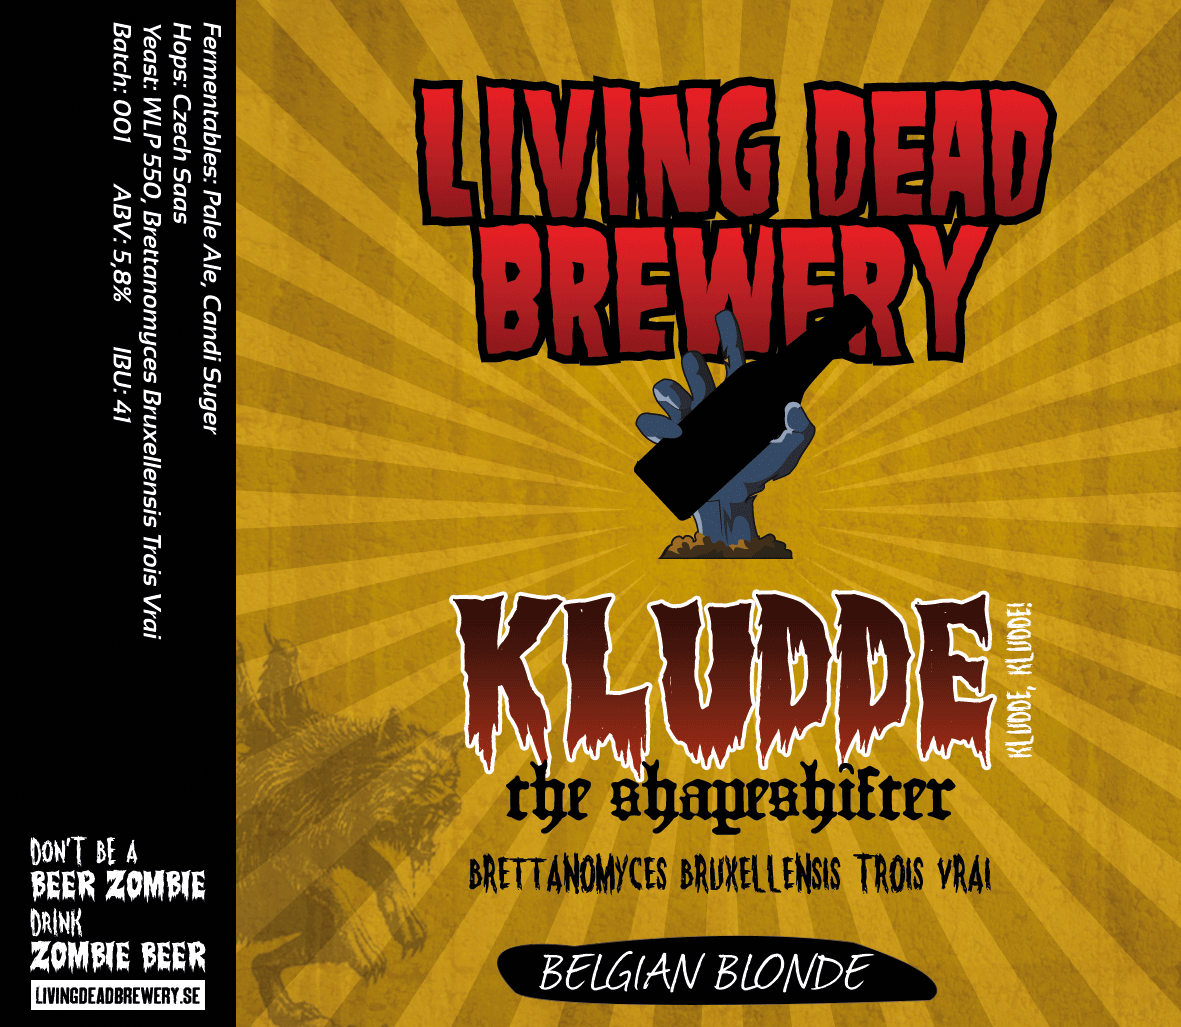 kludde-the-shapeshifter-Brettanomyces-Bruxellensis-Trois-Vrai